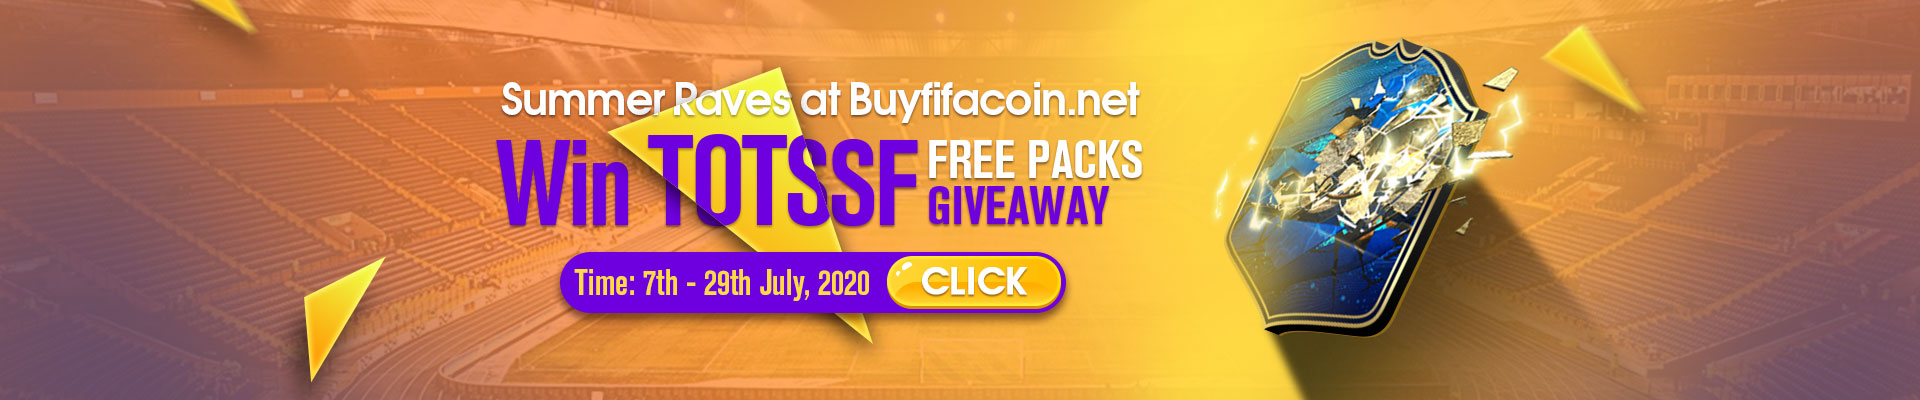 Summer Raves at Buyfifacoin.net: WIN TOTSSF Free Packs Giveaway